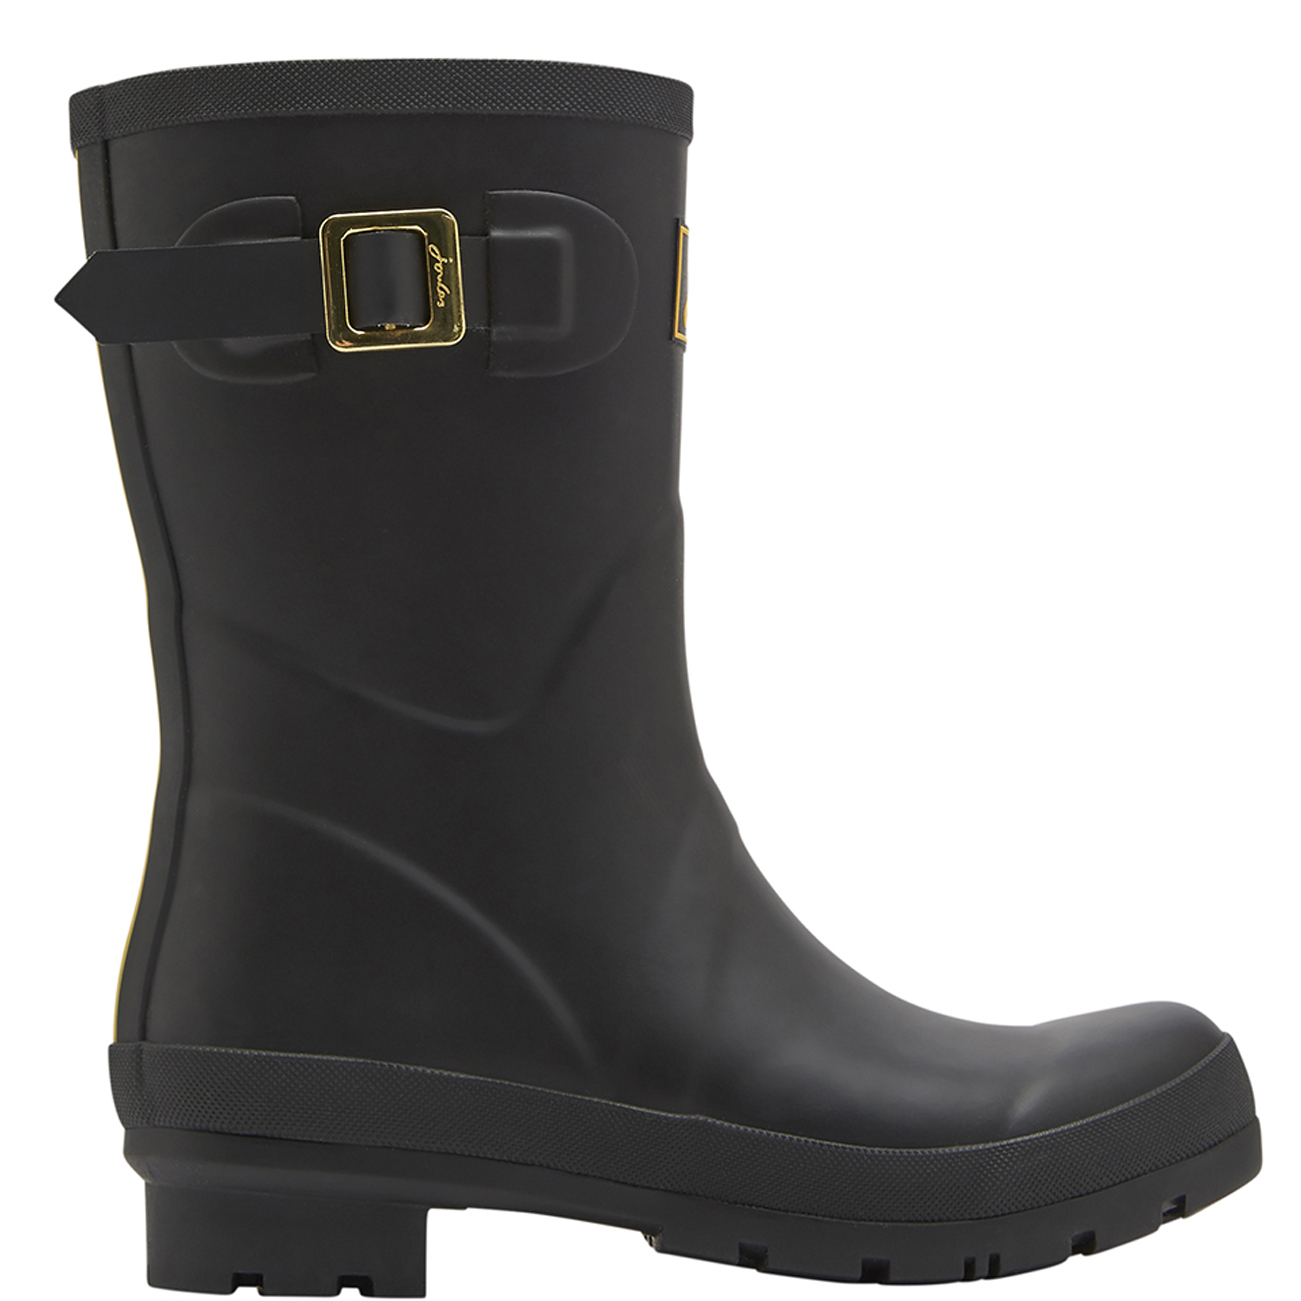 Damen Joules Kelly Mid Height Stiefel Wellies Winter Schnee Wasserdicht Stiefel Height EU 36-42 f0d0c7